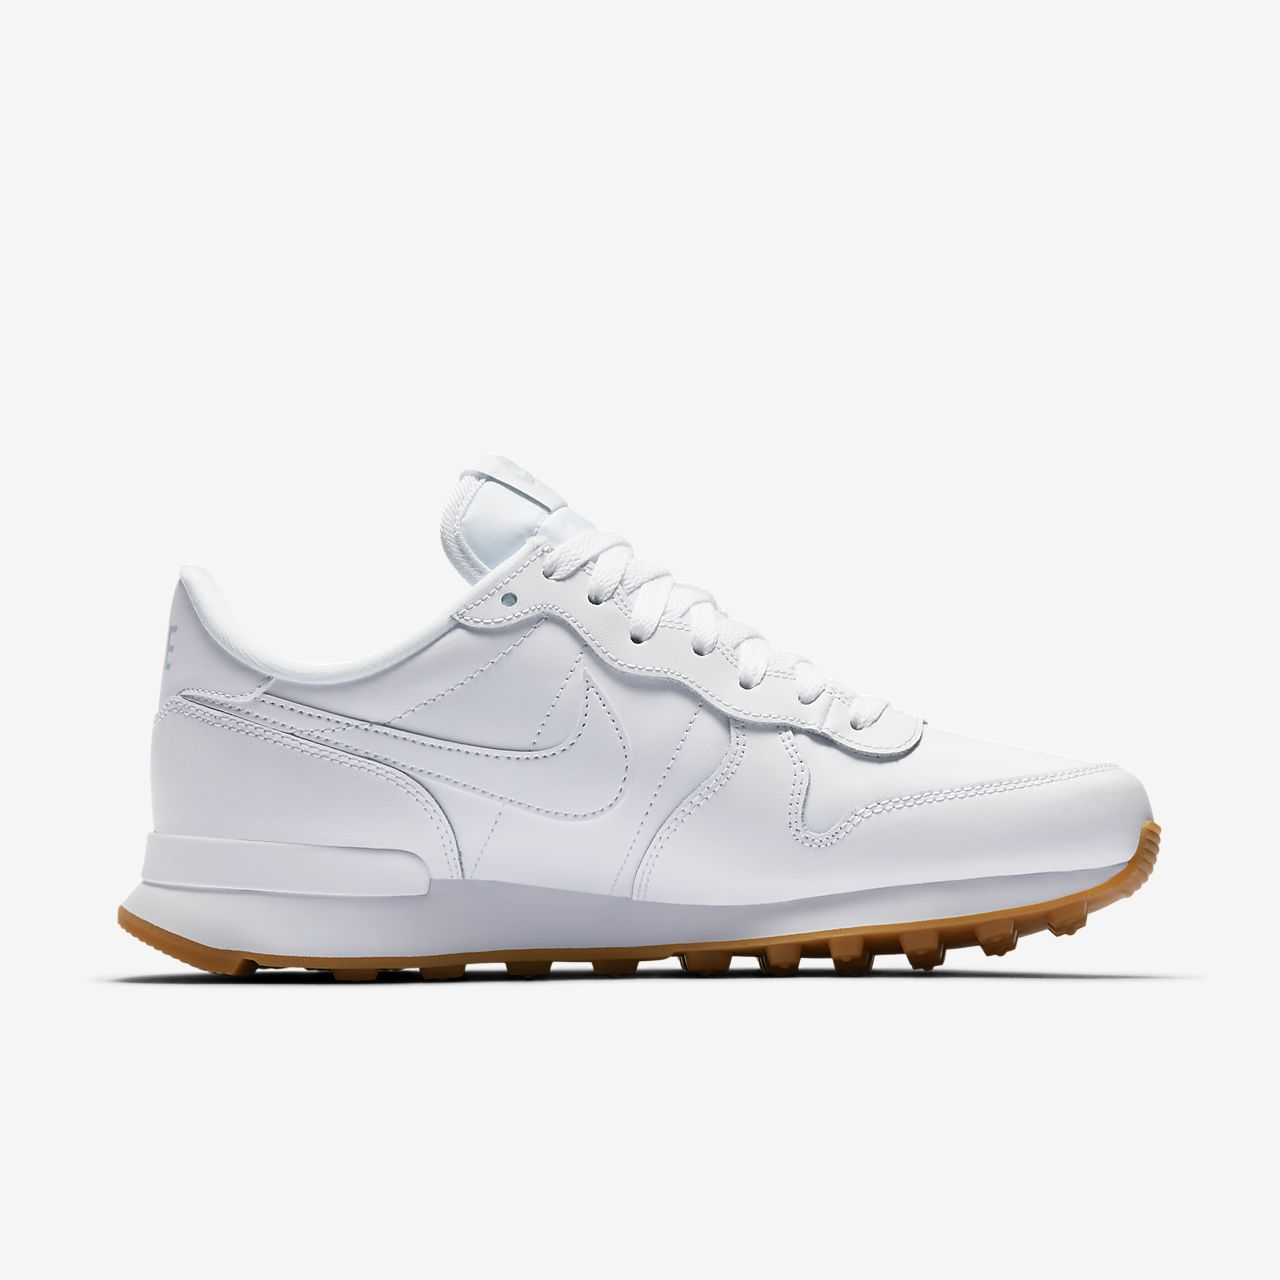 995c4796c5f0 Low Resolution Nike Internationalist női cipő Nike Internationalist női cipő